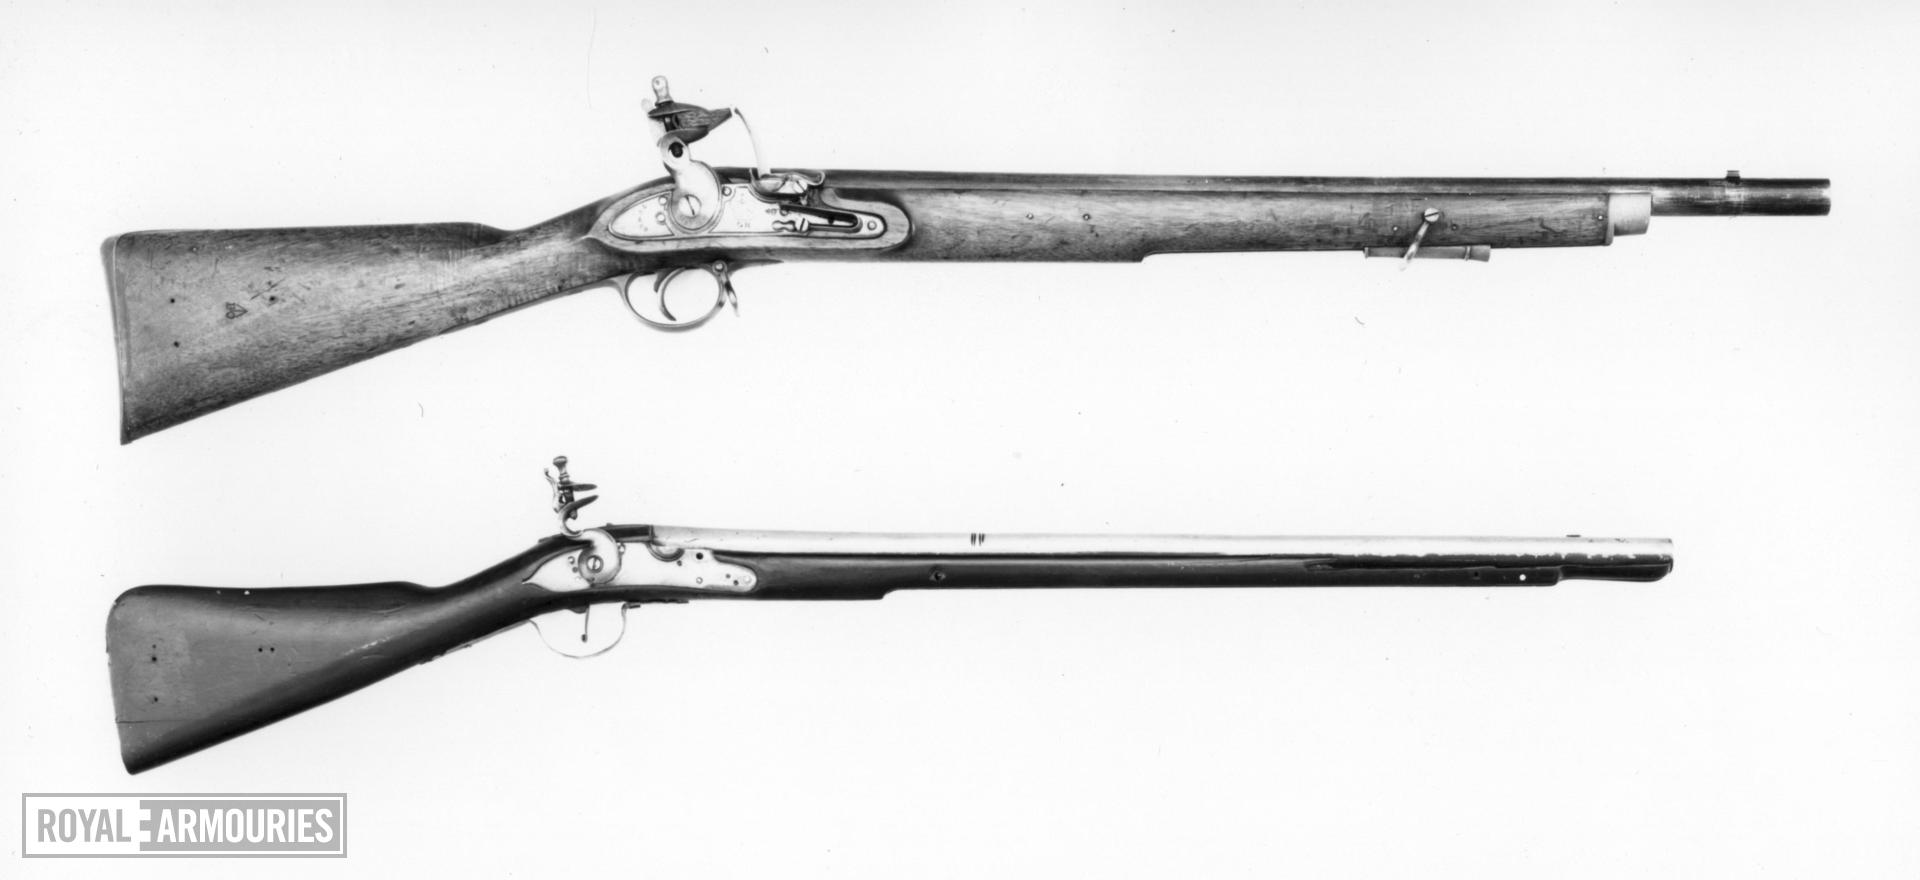 Flintlock muzzle-loading military carbine - By C. Rose